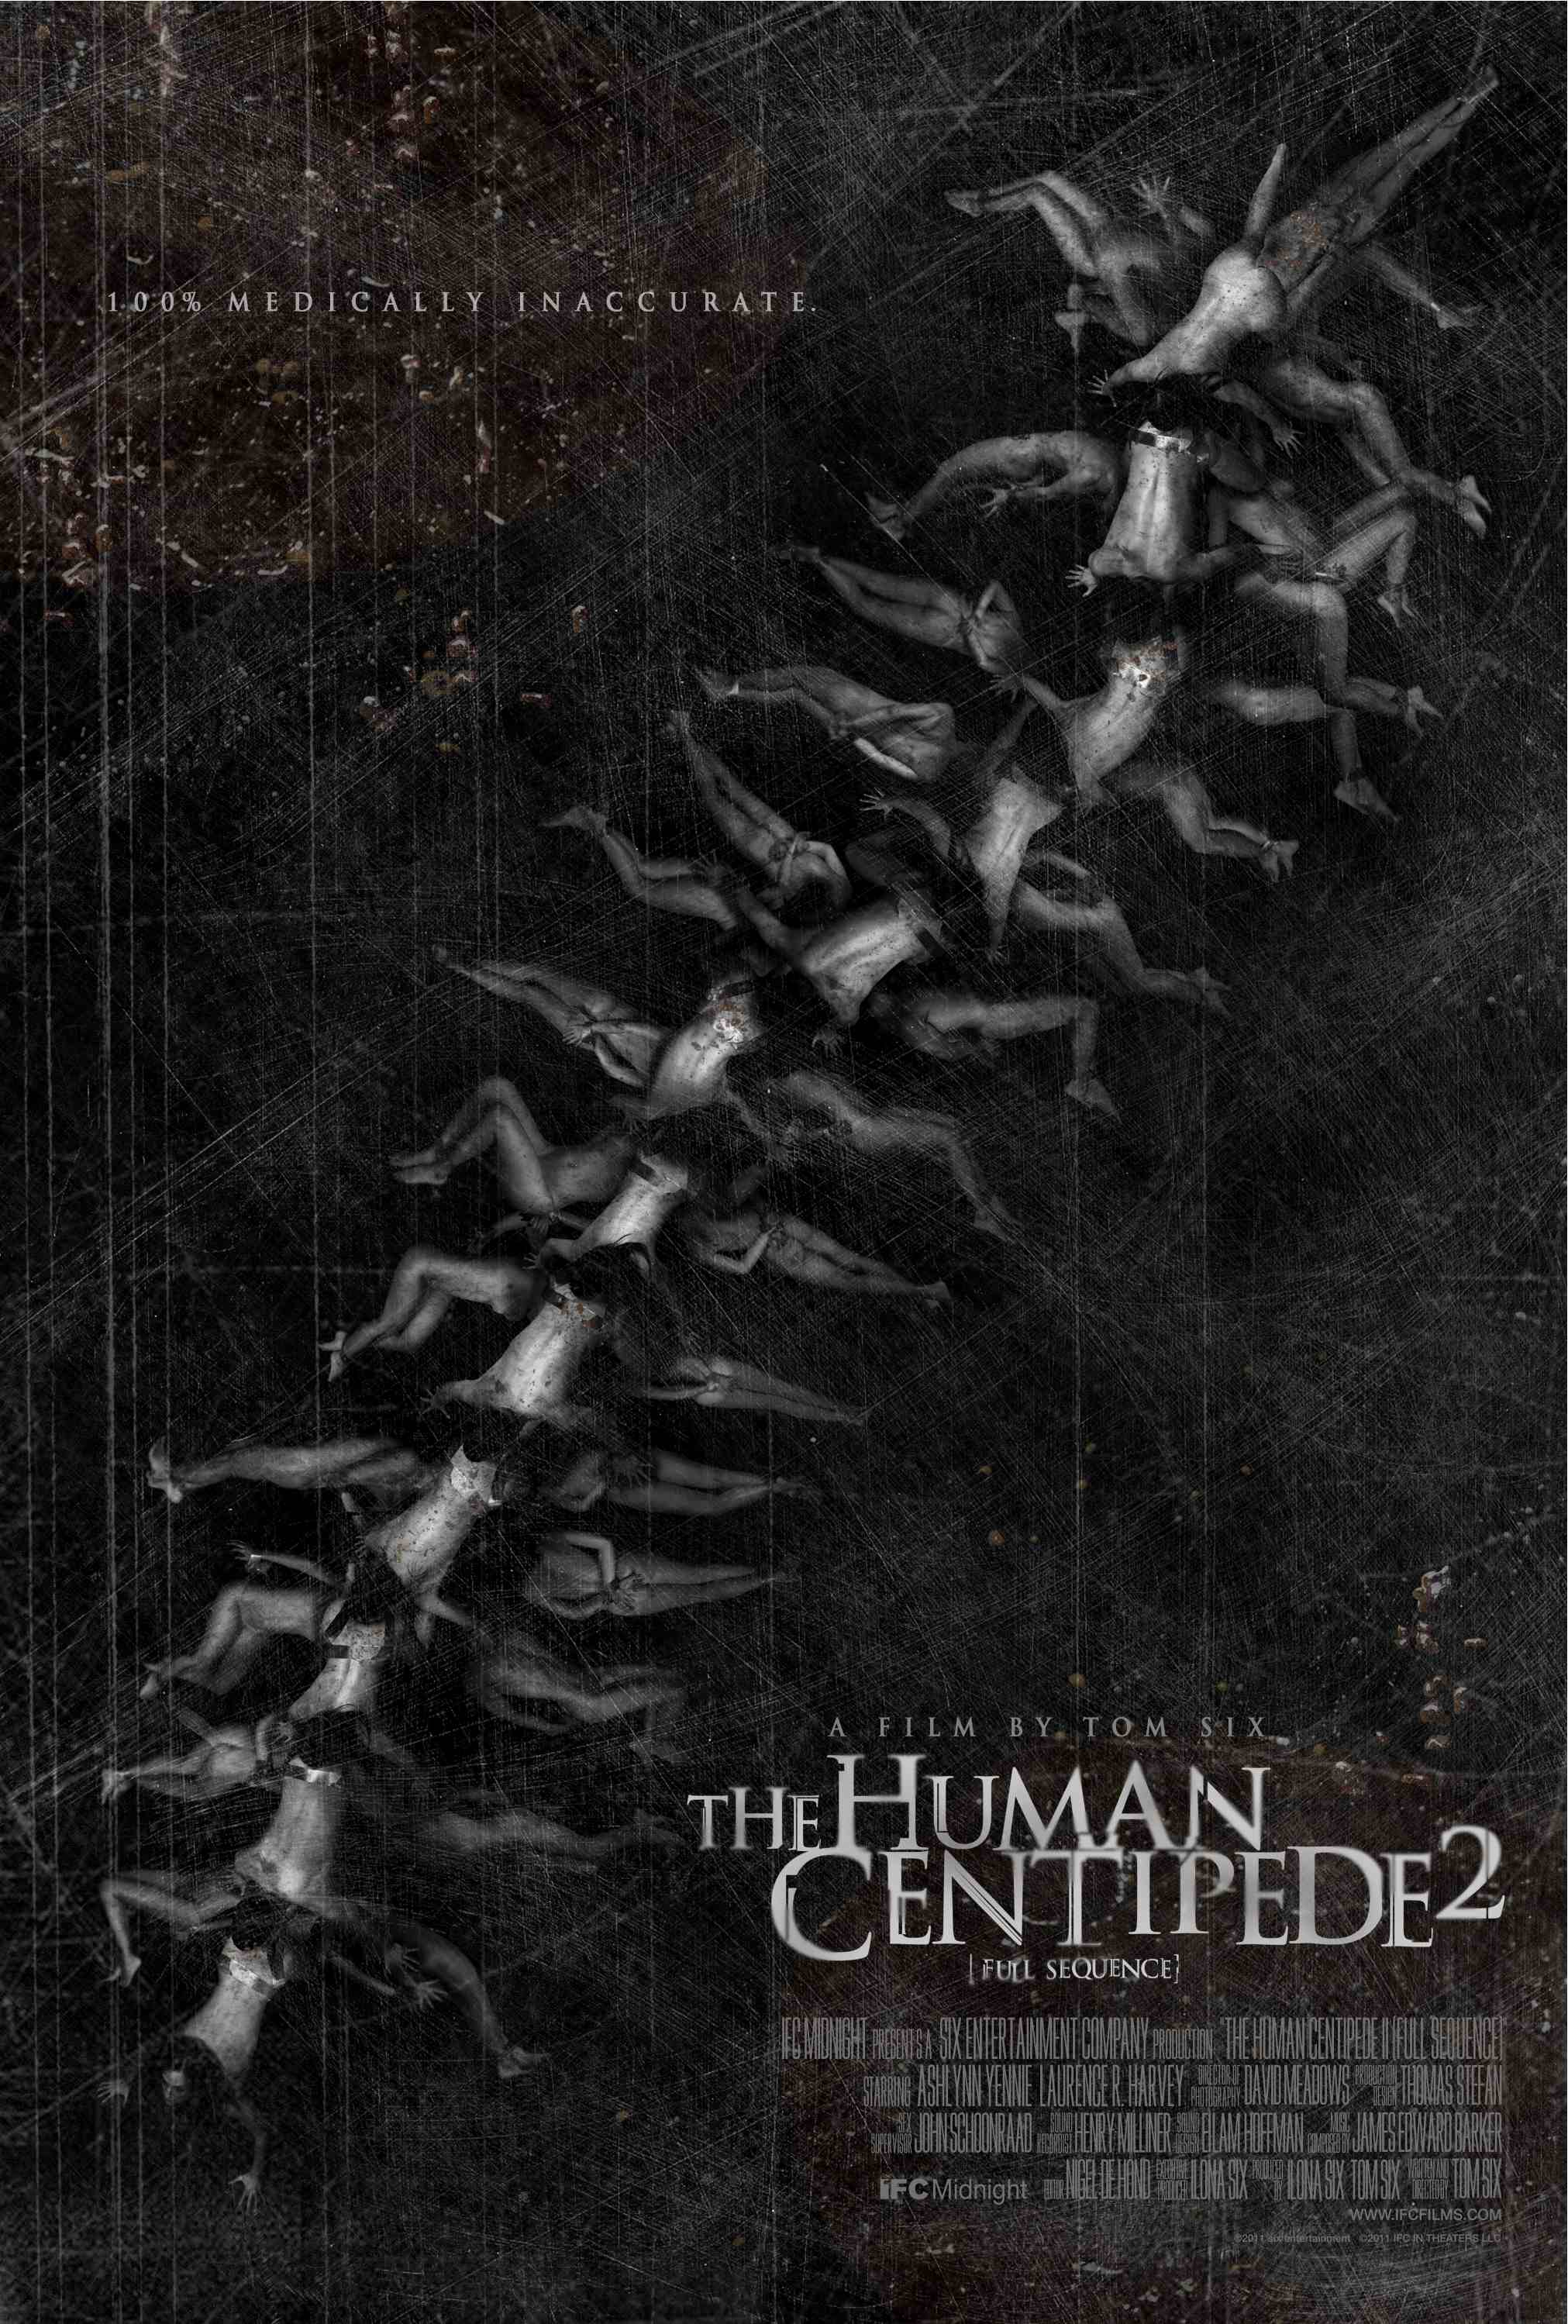 Movie Review: The Human Centipede II: Full Sequence